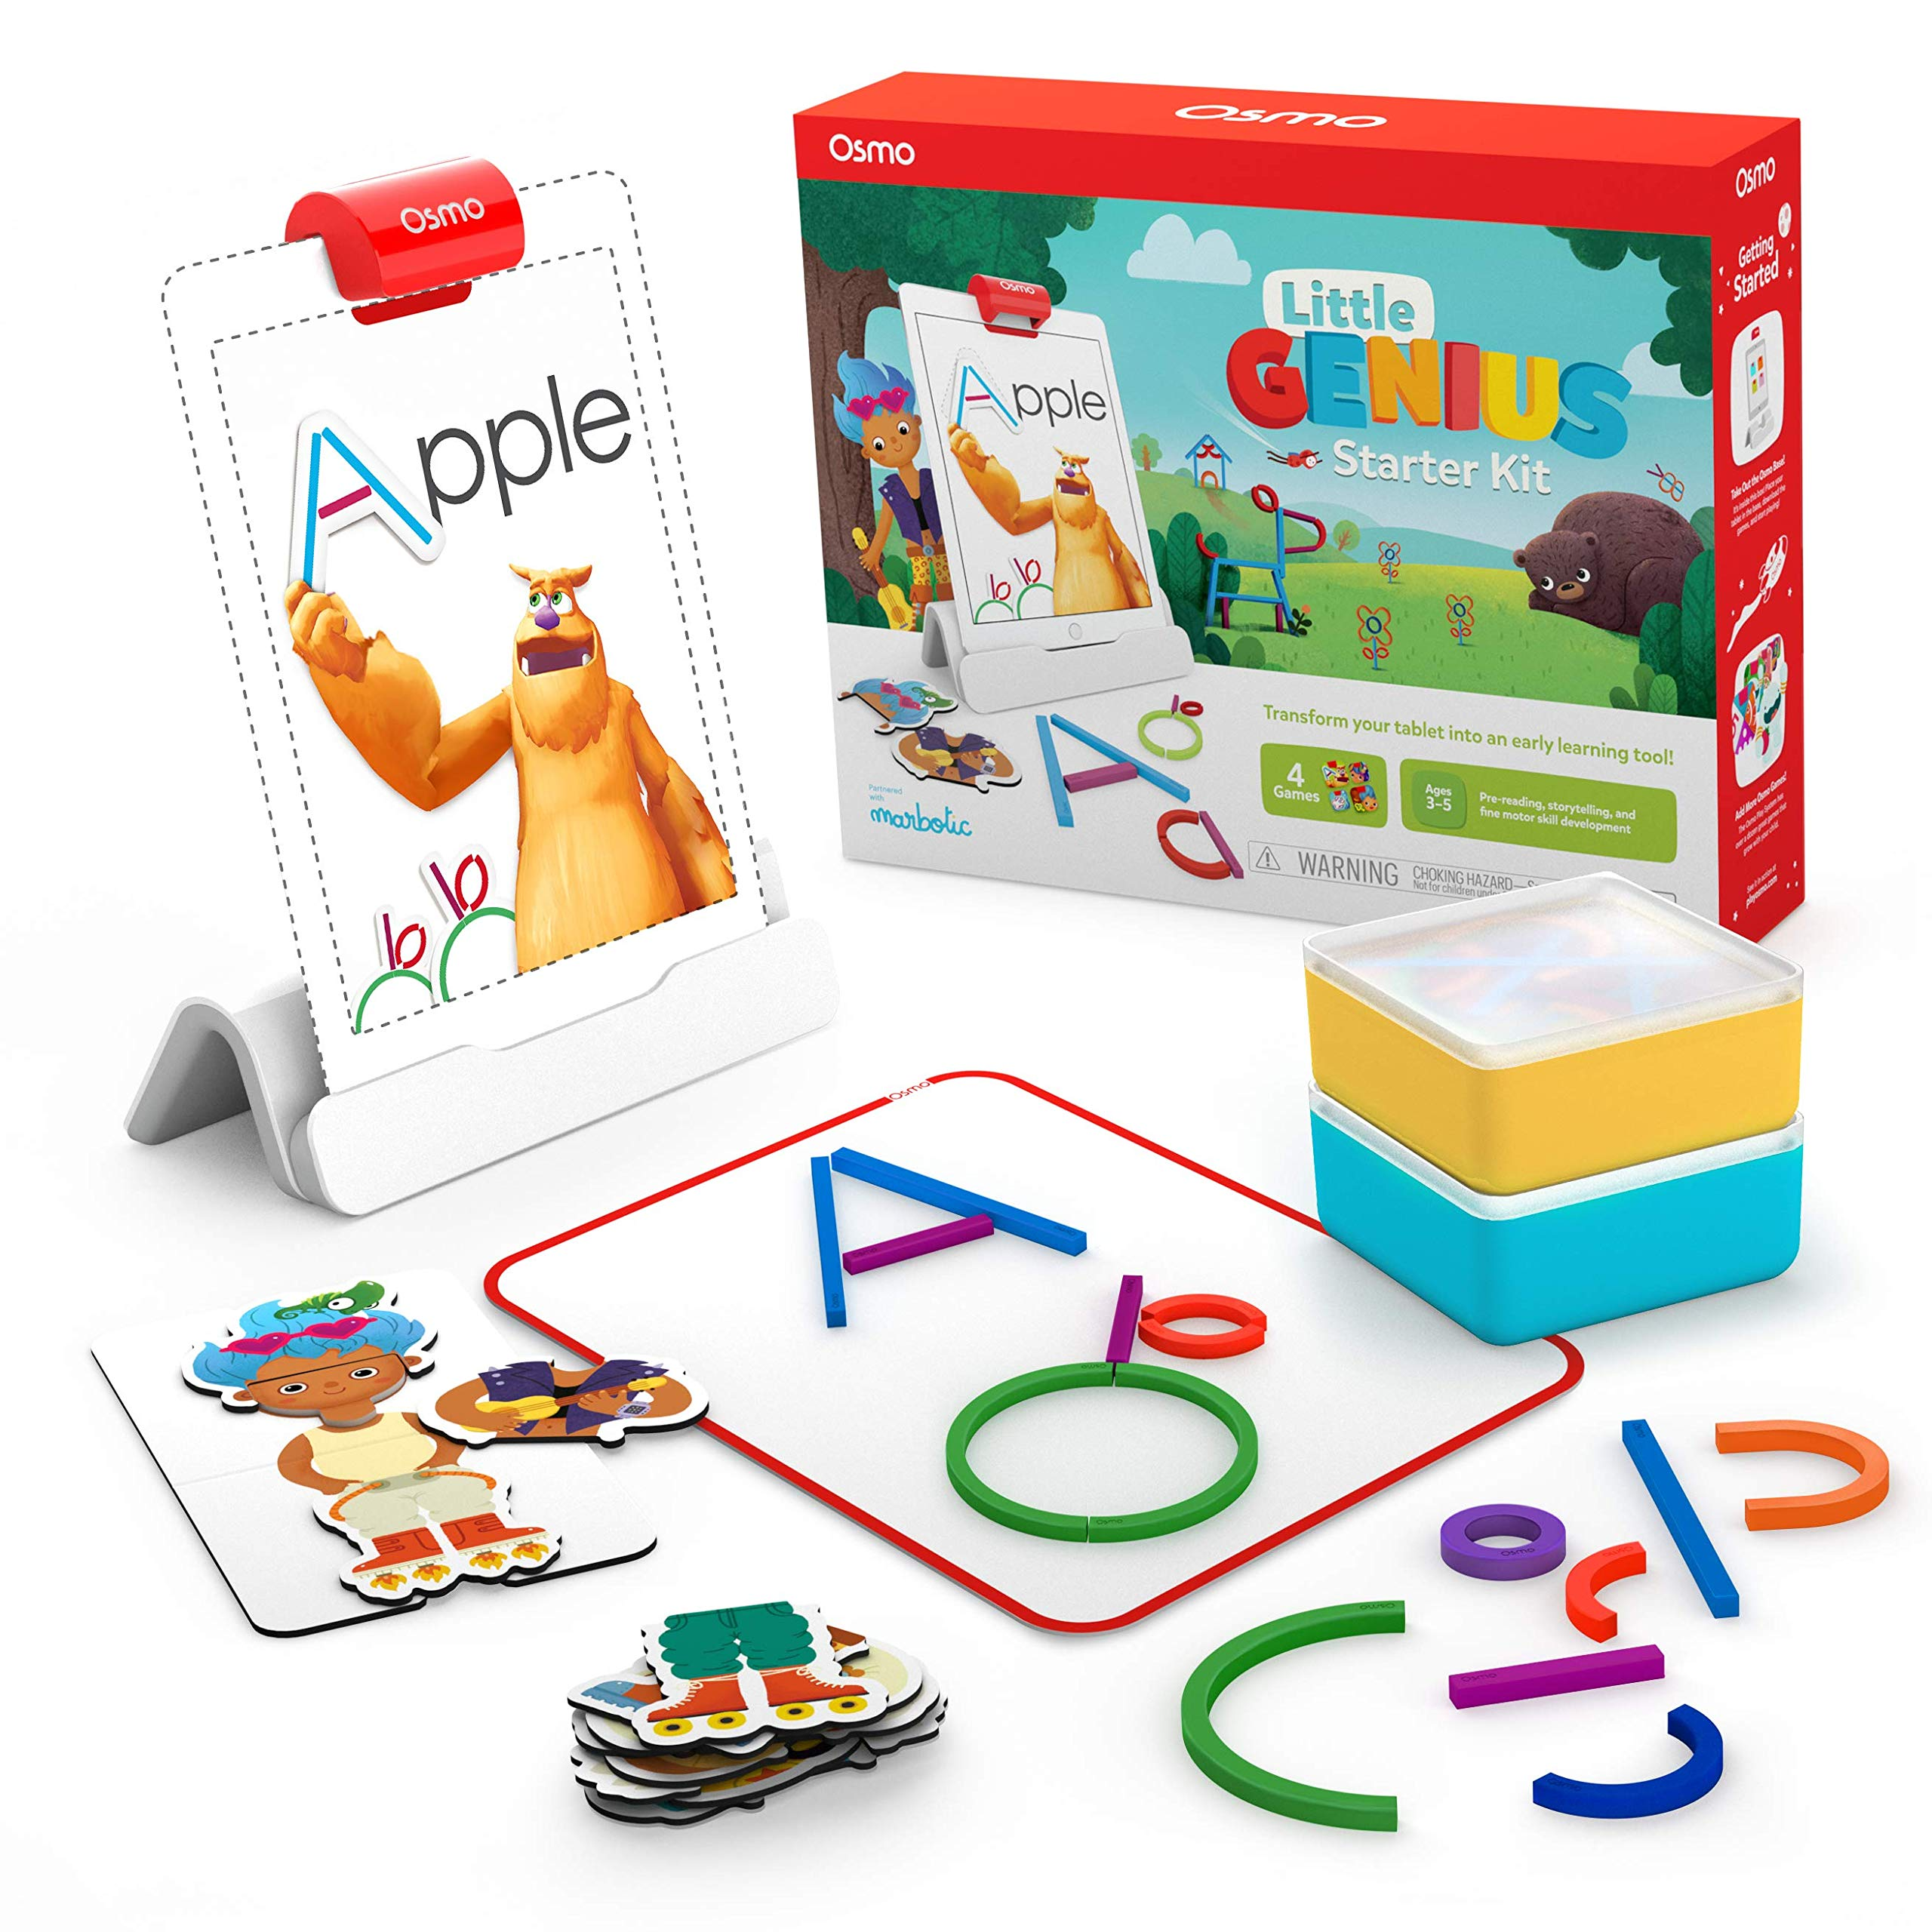 Osmo - Little Genius Starter Kit for iPad - 4 Hands-On Learning Games - Preschool Ages - Problem Solving, & Creativity (Osmo iPad Base Included)